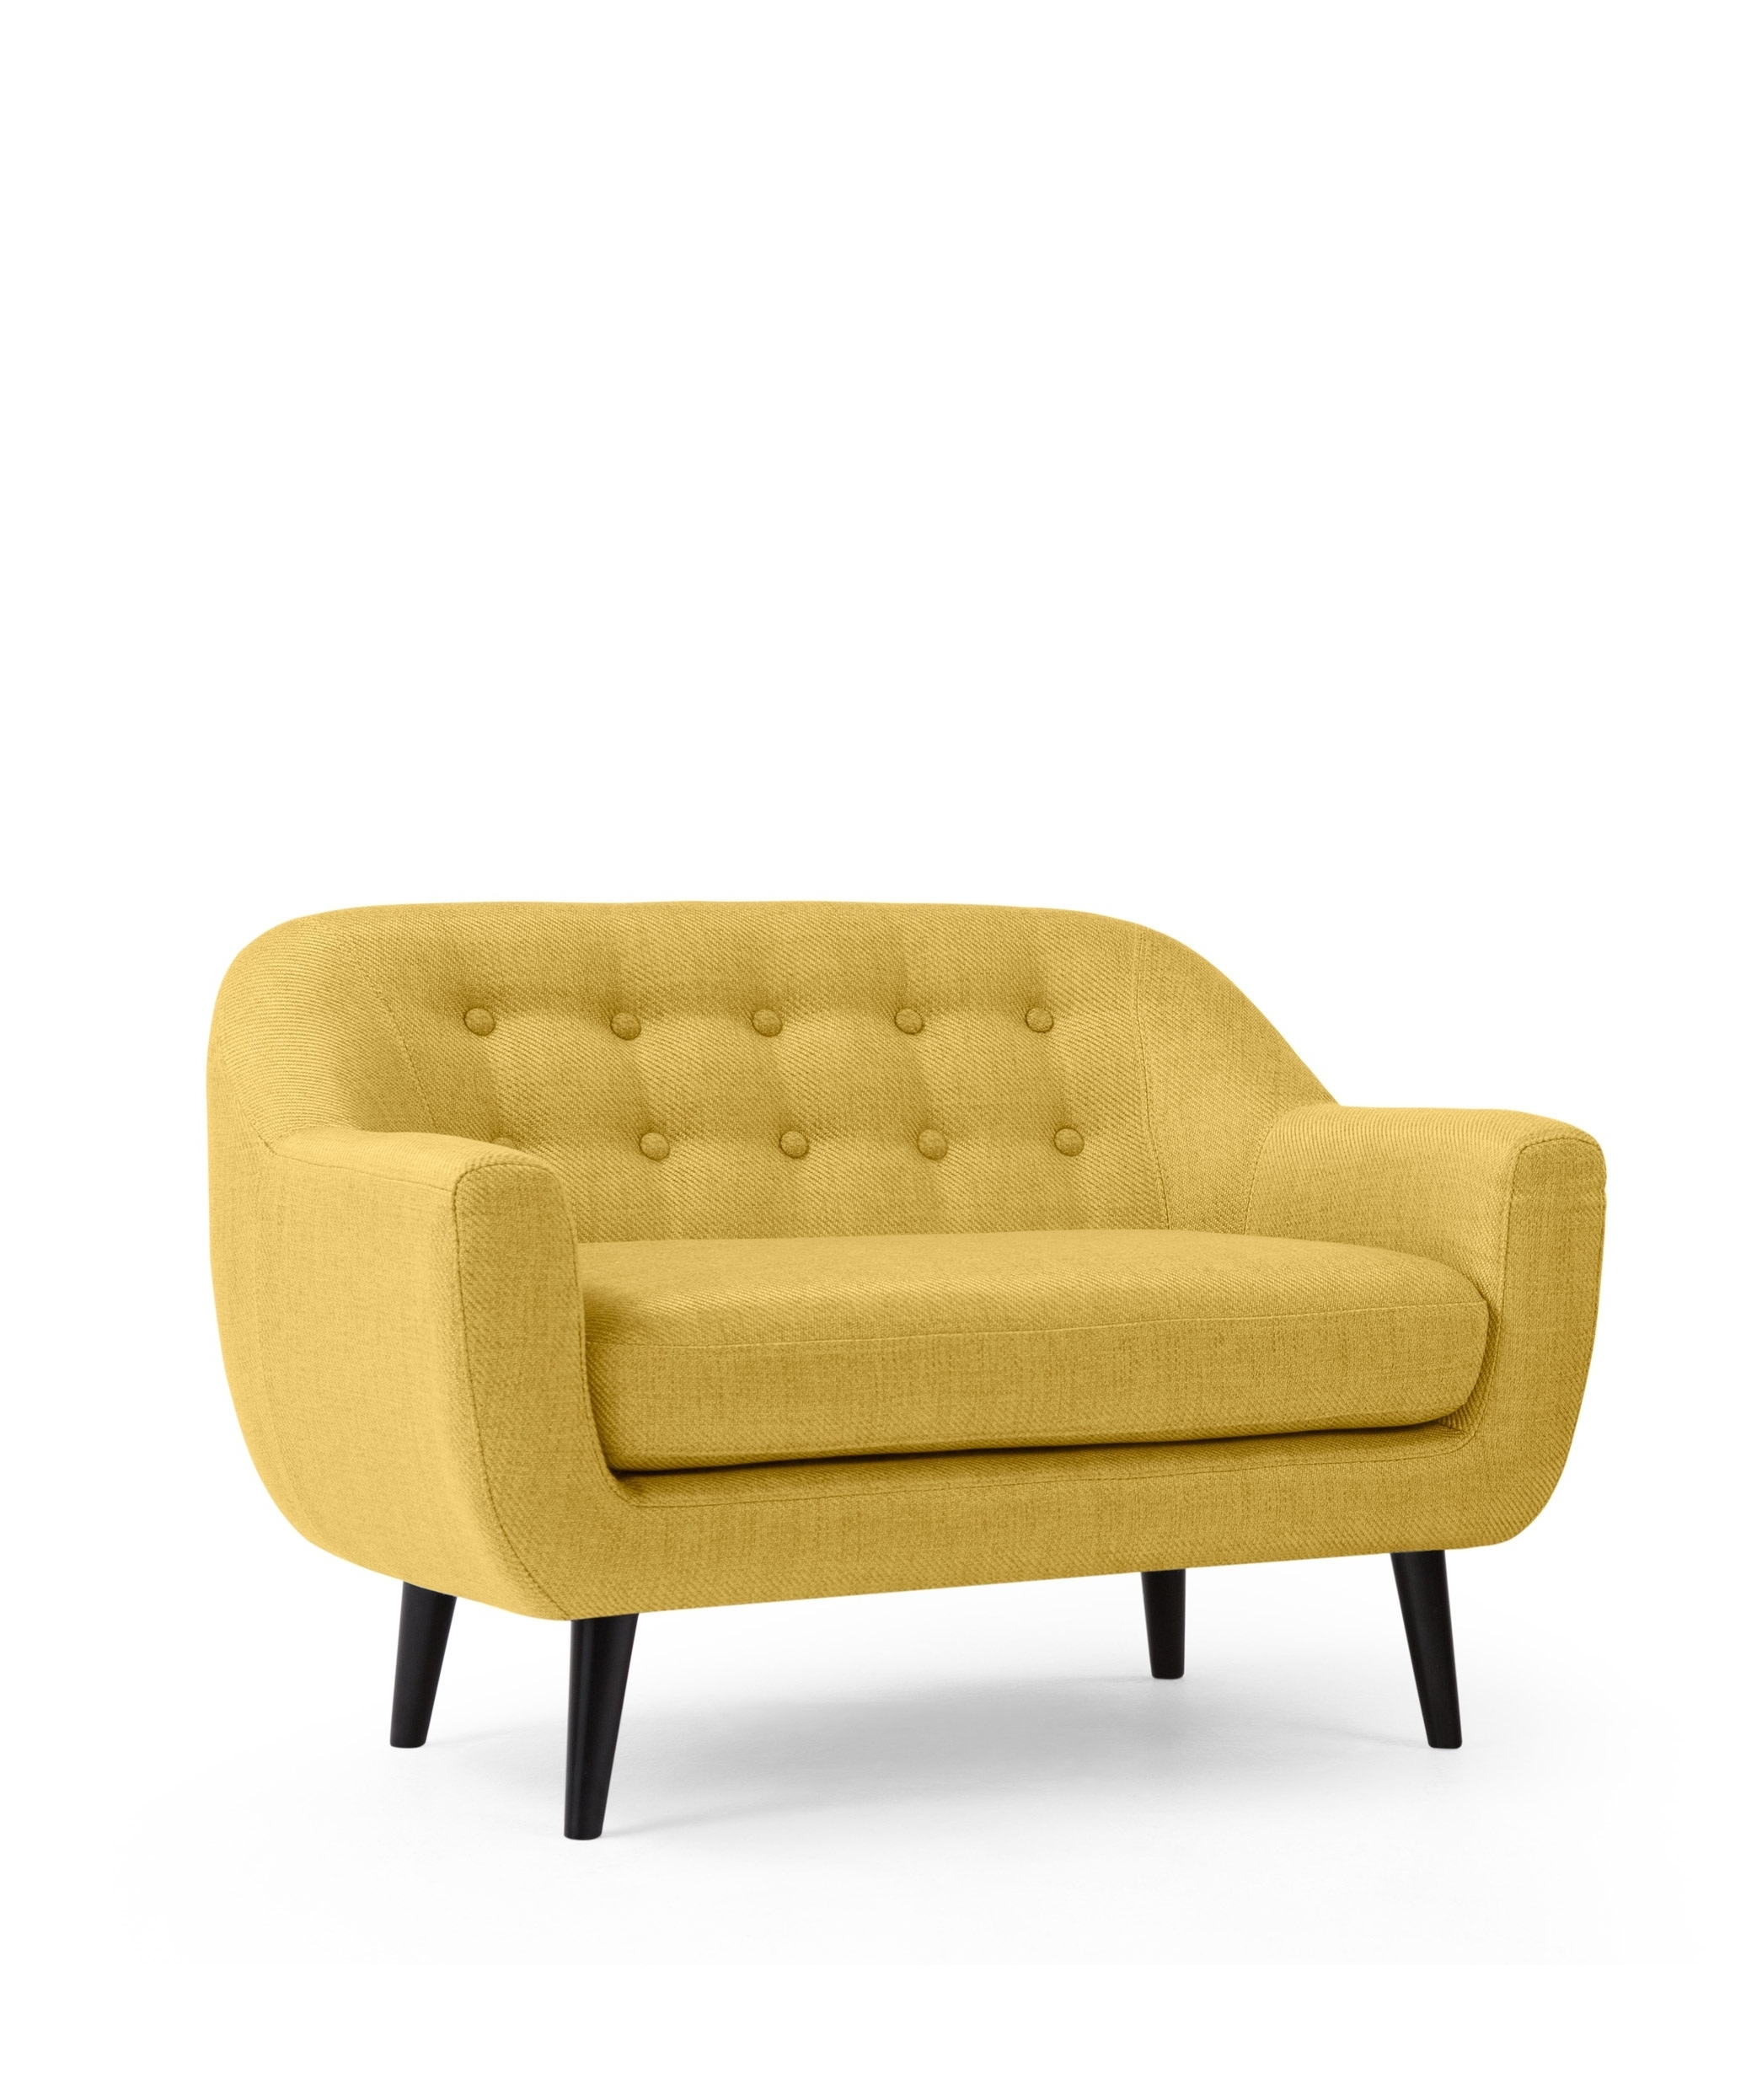 Most Recently Released Mini Sofas Regarding The Mini Ritchie 2 Seater Sofa, In Ochre Yellow (View 9 of 15)